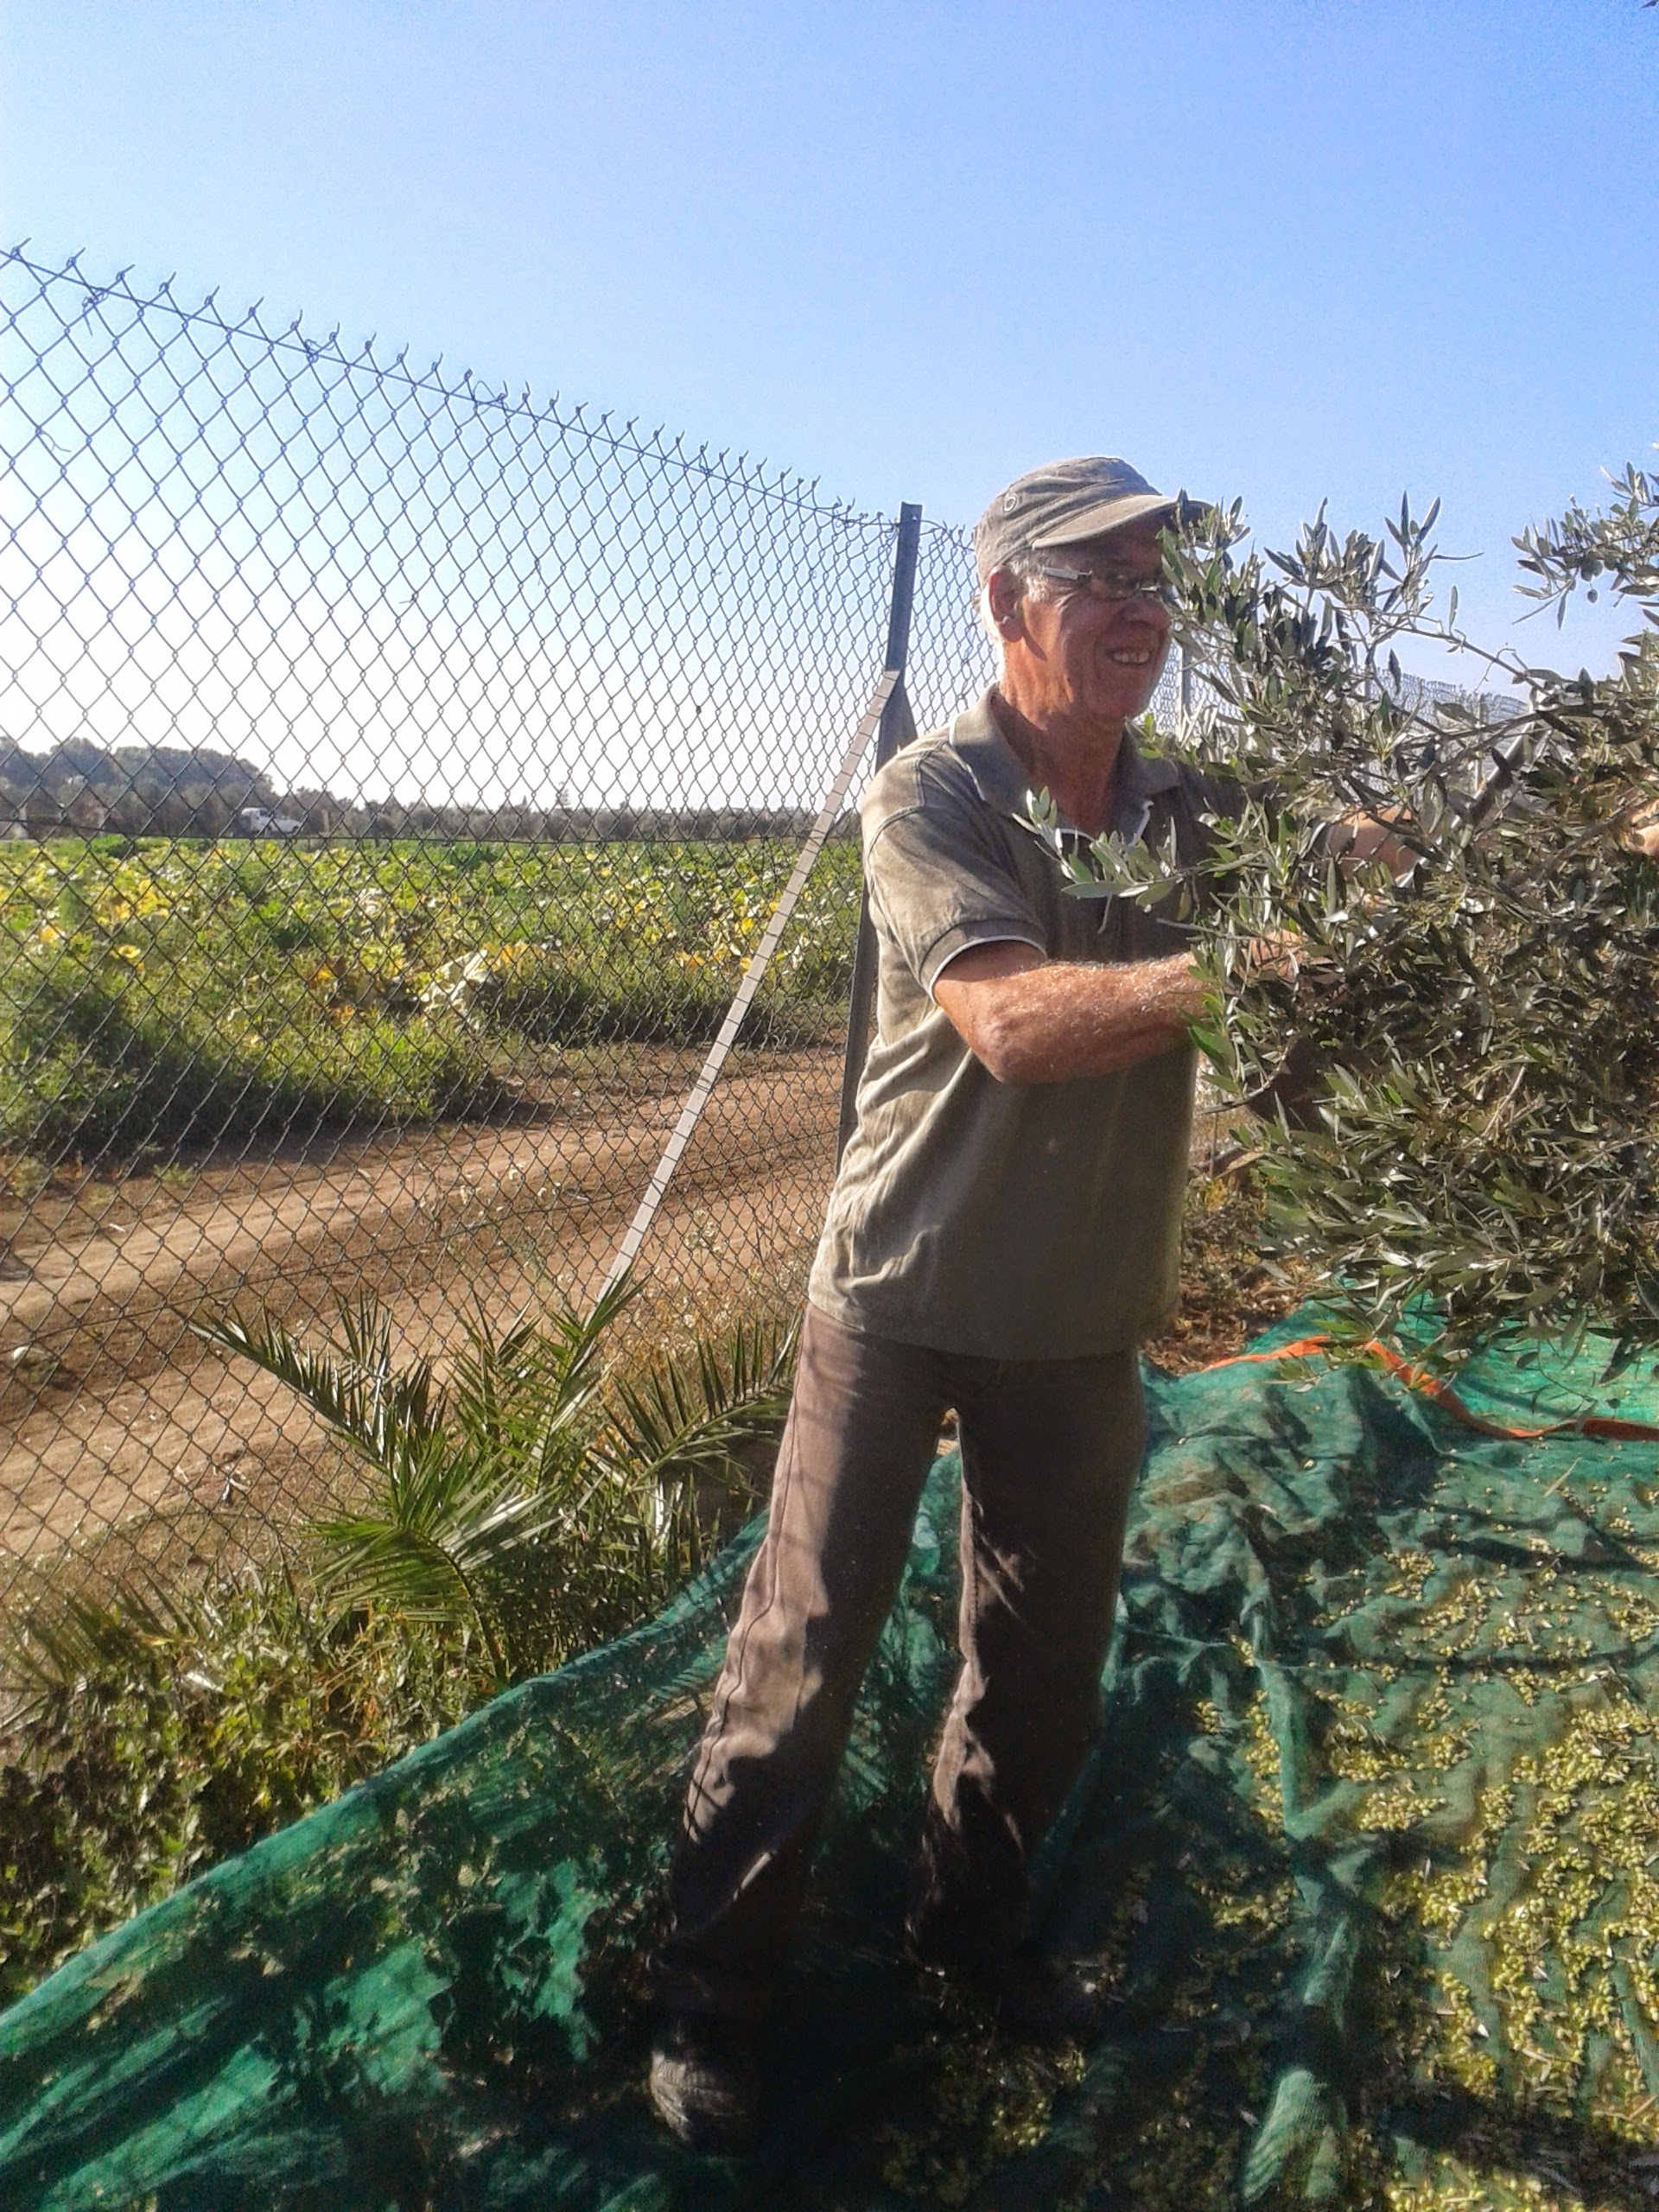 Takis harvesting the olives